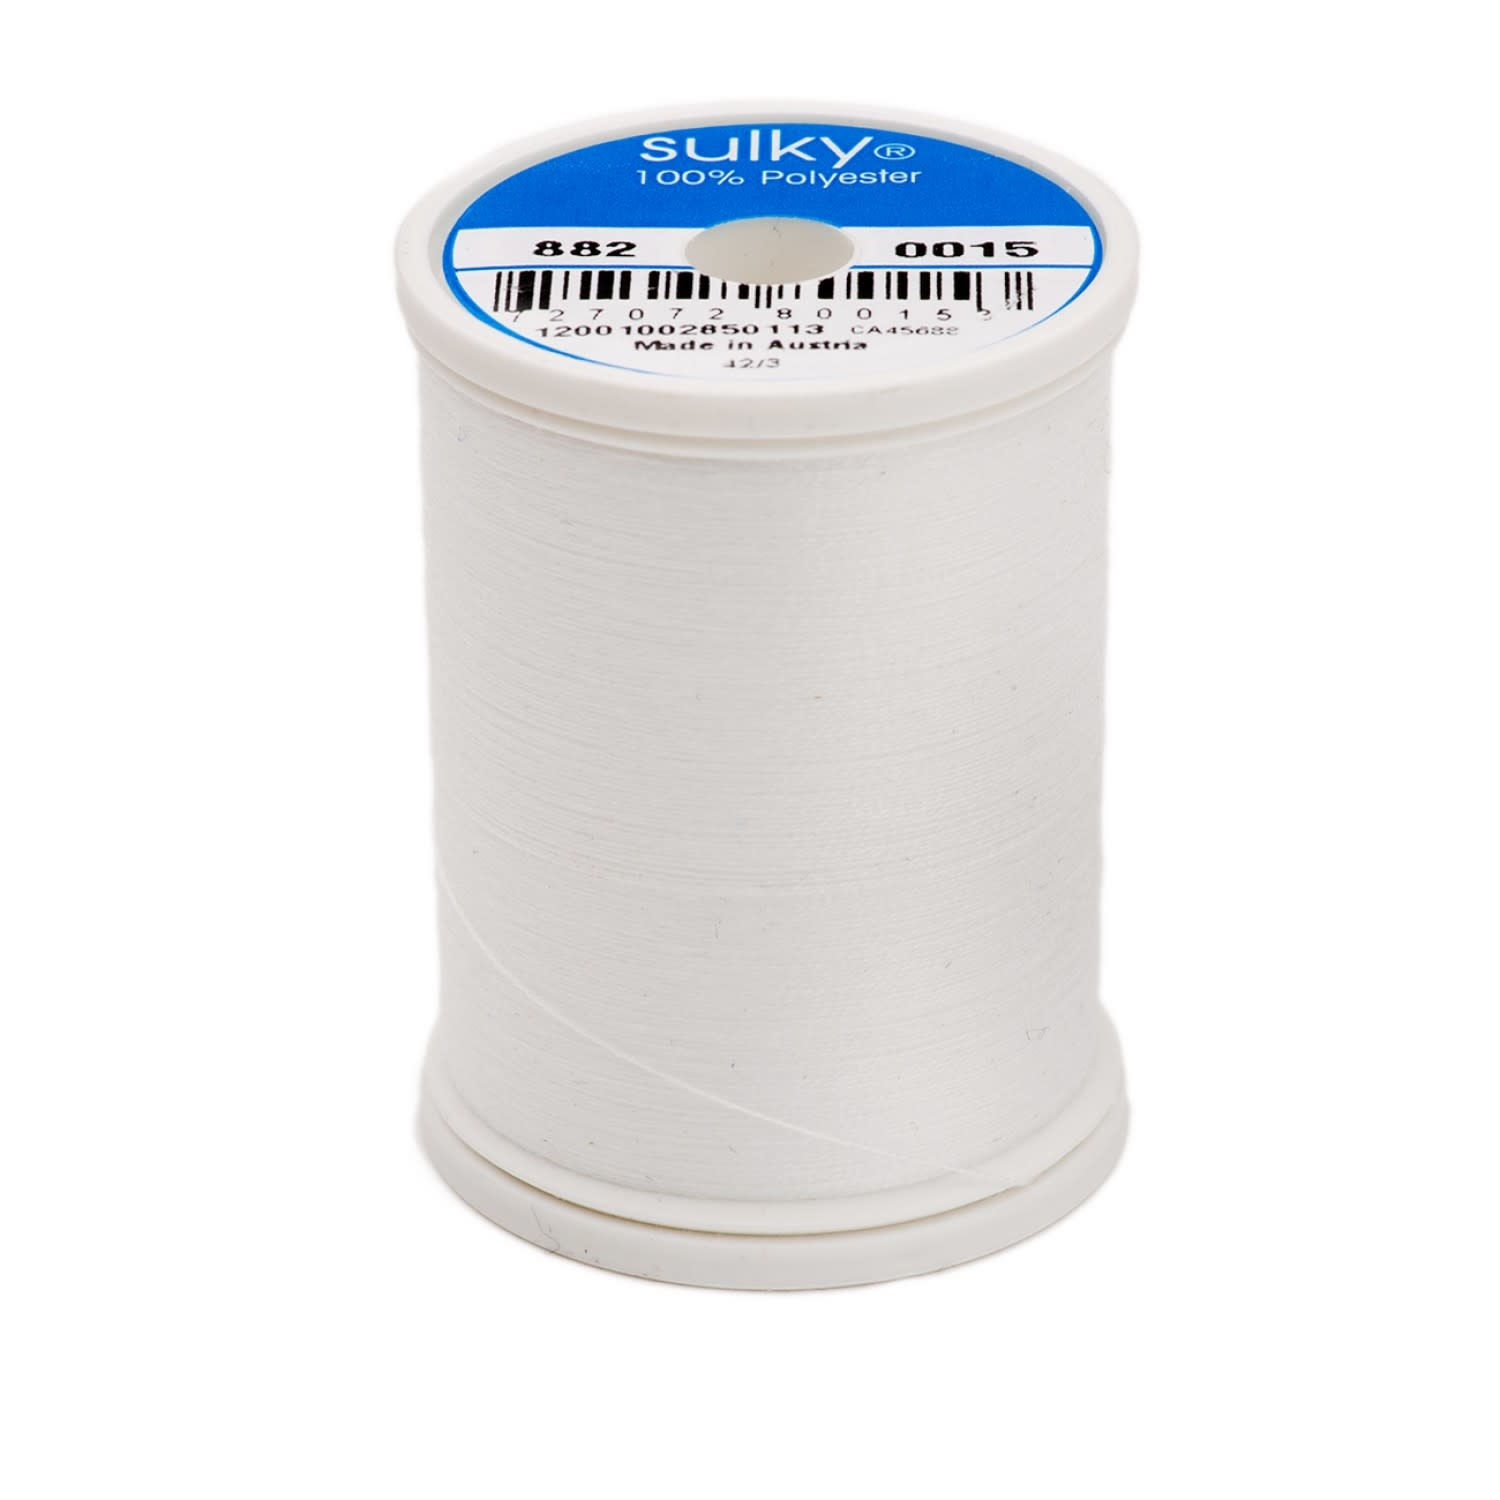 SULKY Polyester Bobbin Thread 60wt 1100yds White # 8820015